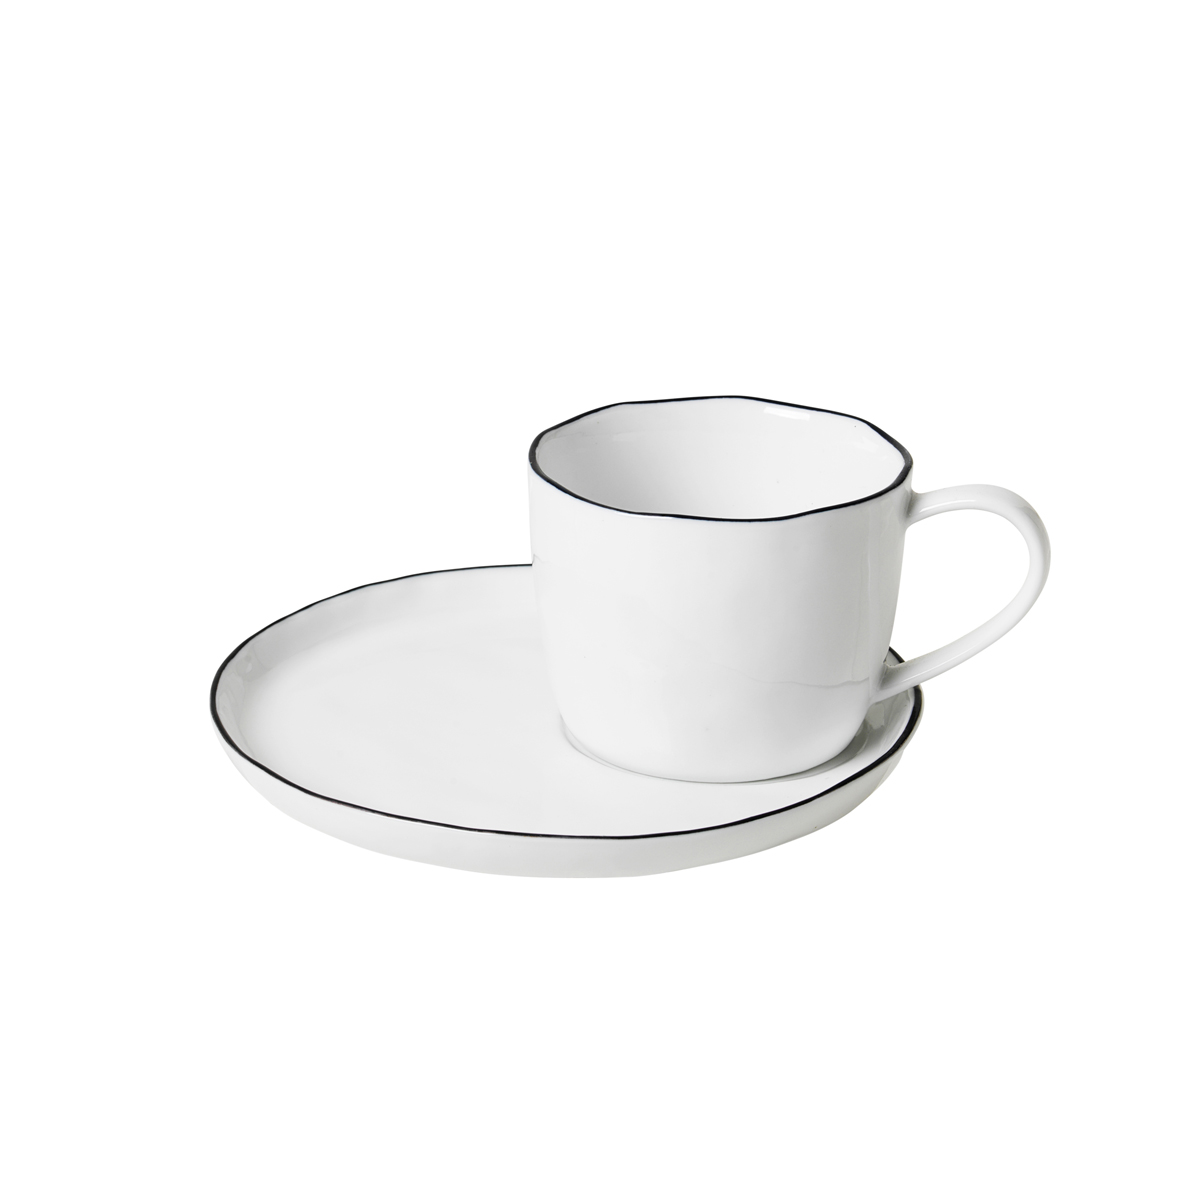 14533190-cup-&-saucer-large